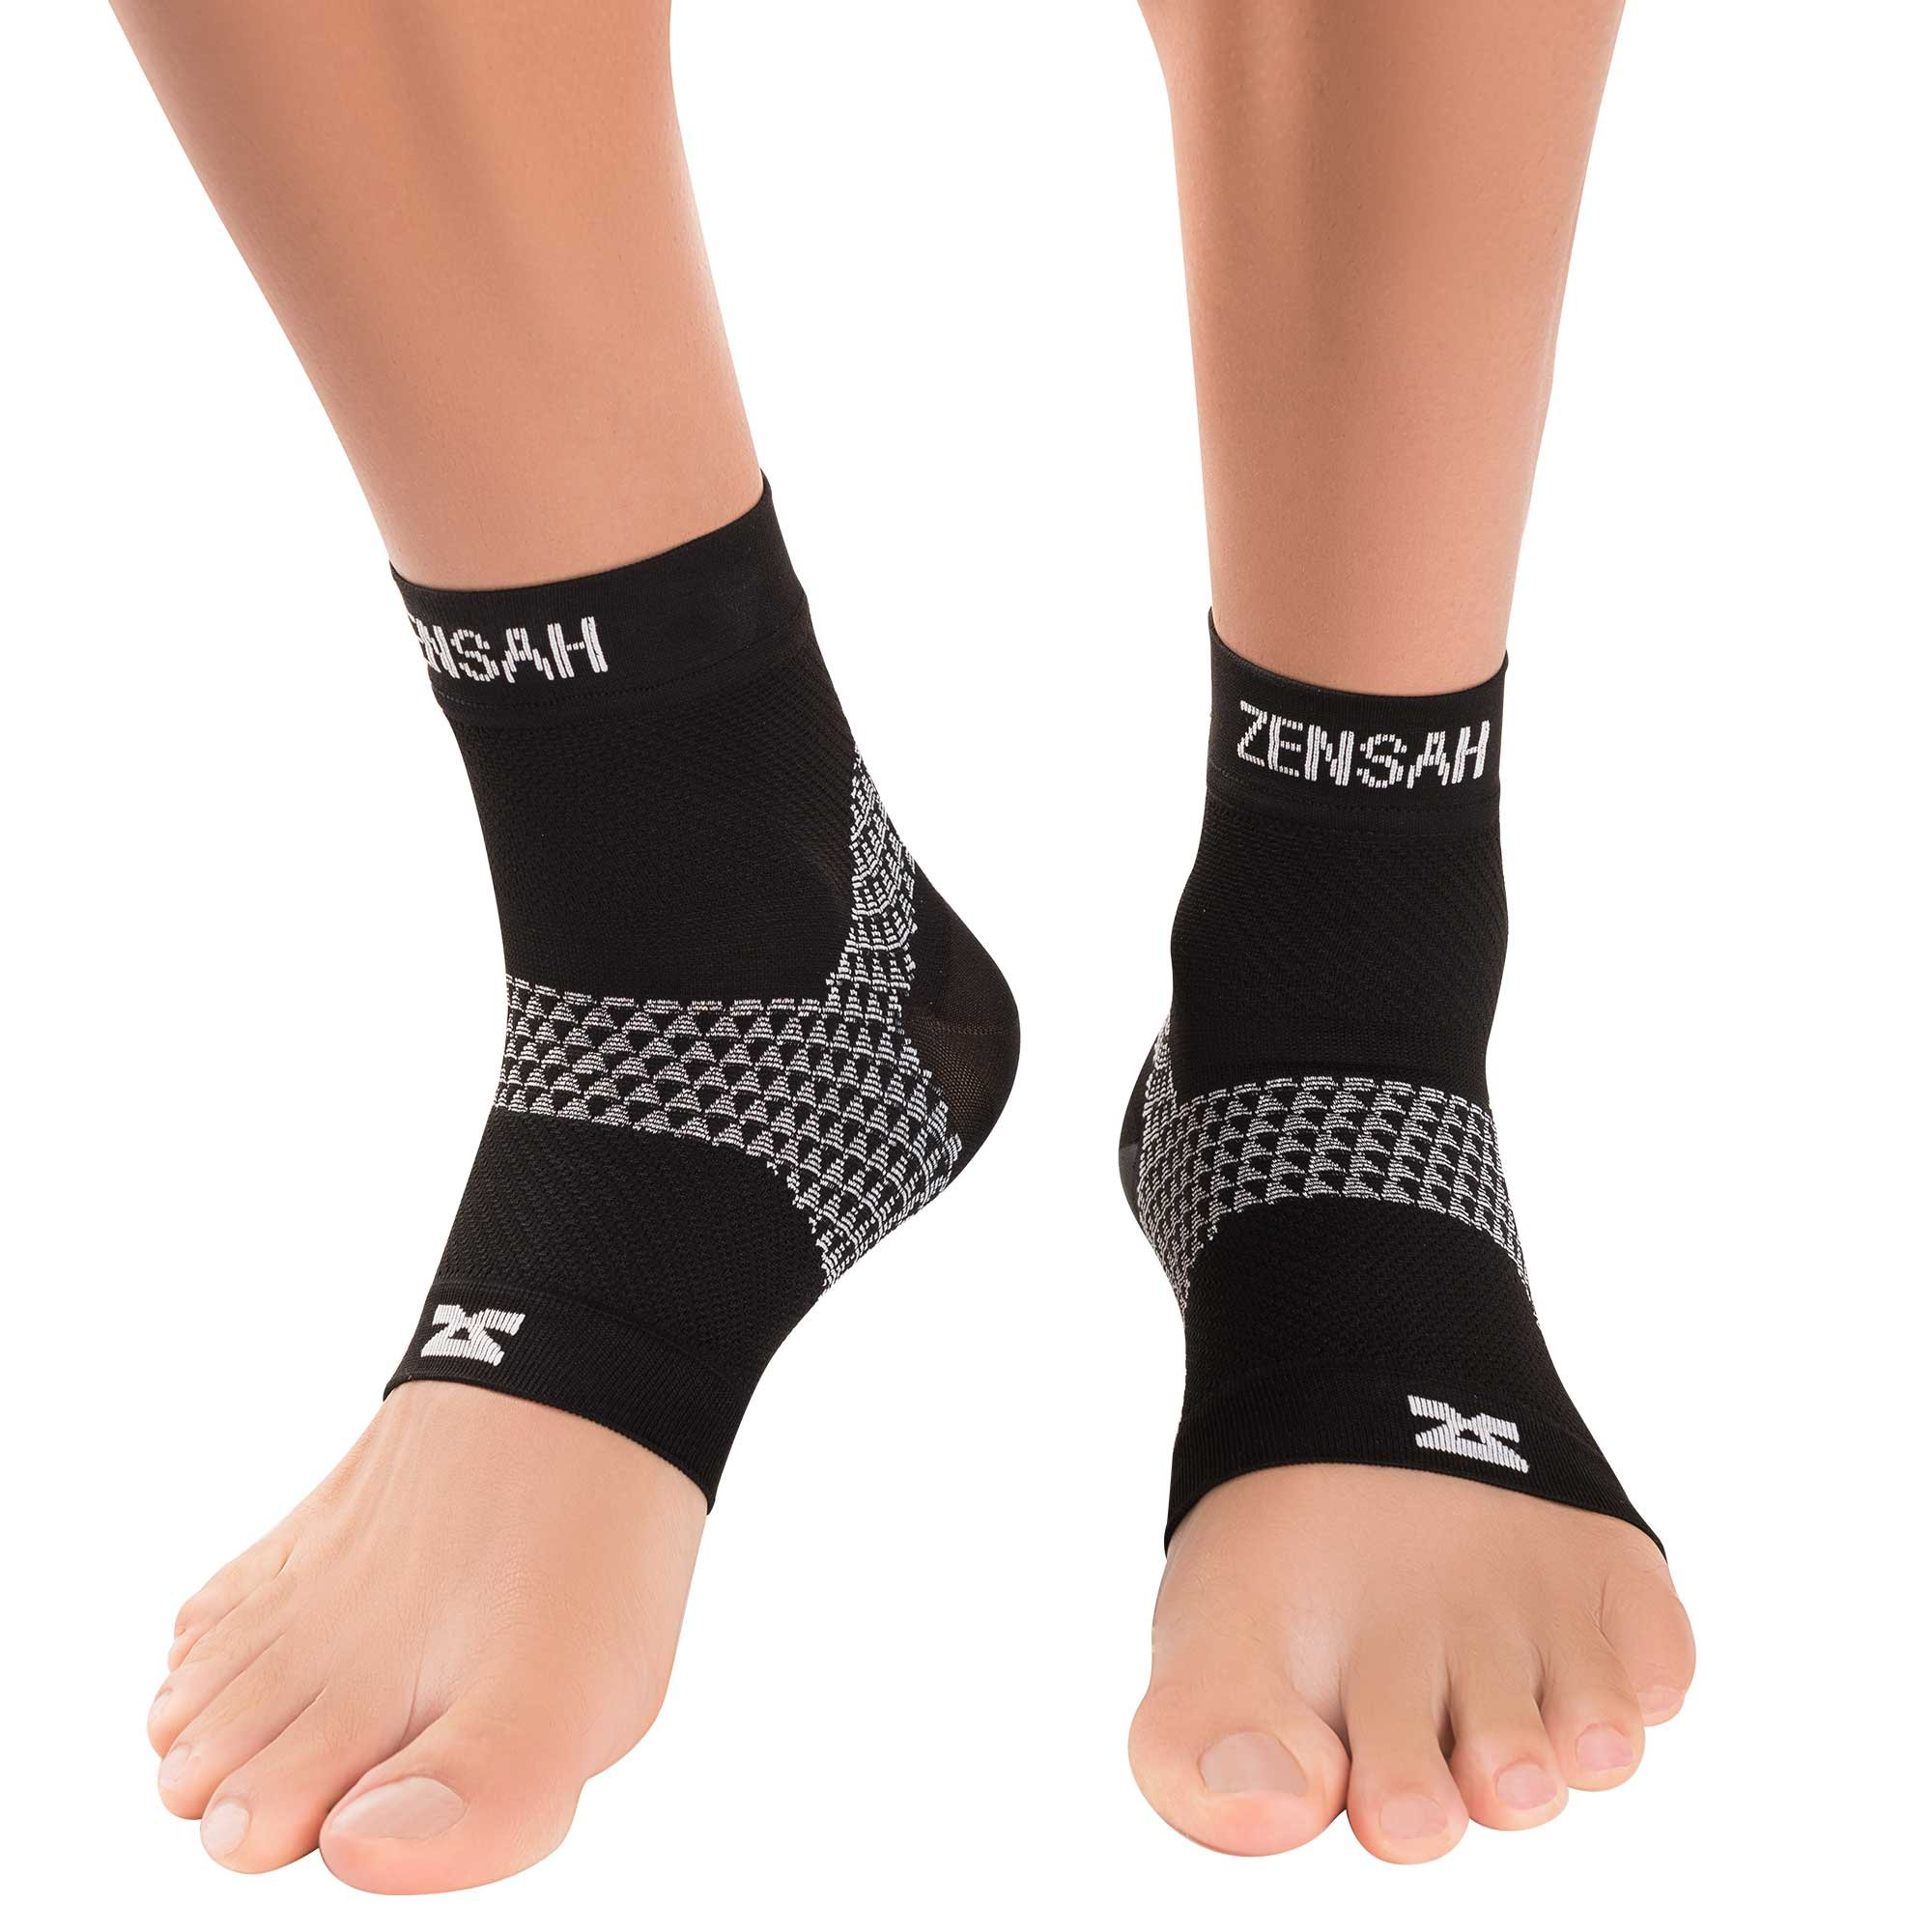 Zensah Plantar Fasciitis Sleeves (Pair) - Plantar Fasciitis Socks, Arch Support, Plantar Fasciitis Brace - Relieve Heel Pain, Arch Support, Small, Black